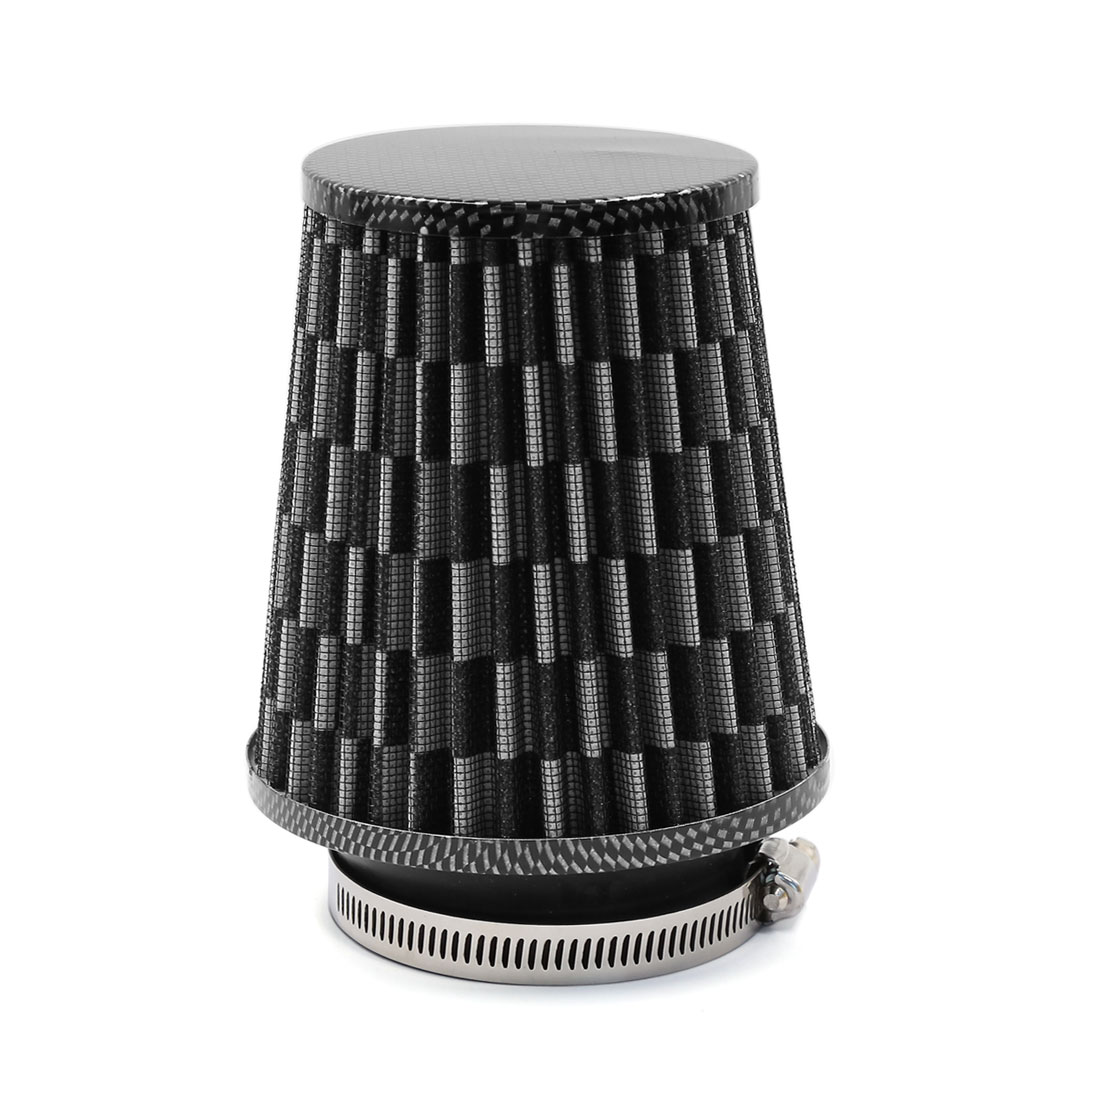 Car 75mm Inlet Dia Carbon Fiber Pattern High Flow Cold Air Intake Cone Filter